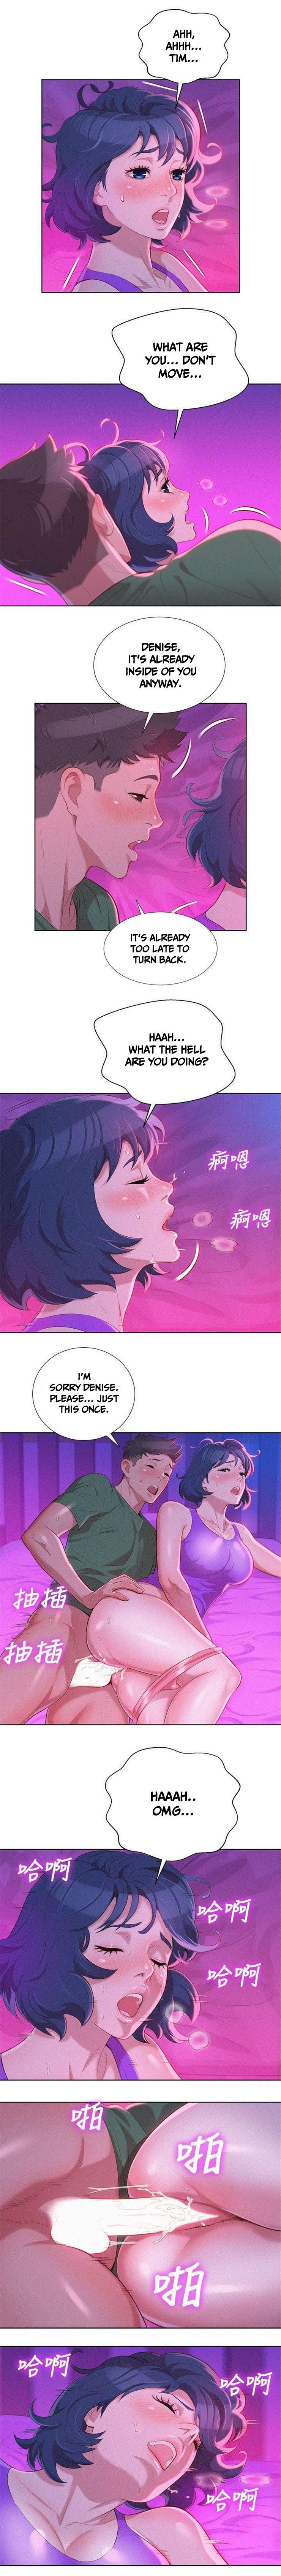 What do you Take me For? Ch.40/? 286